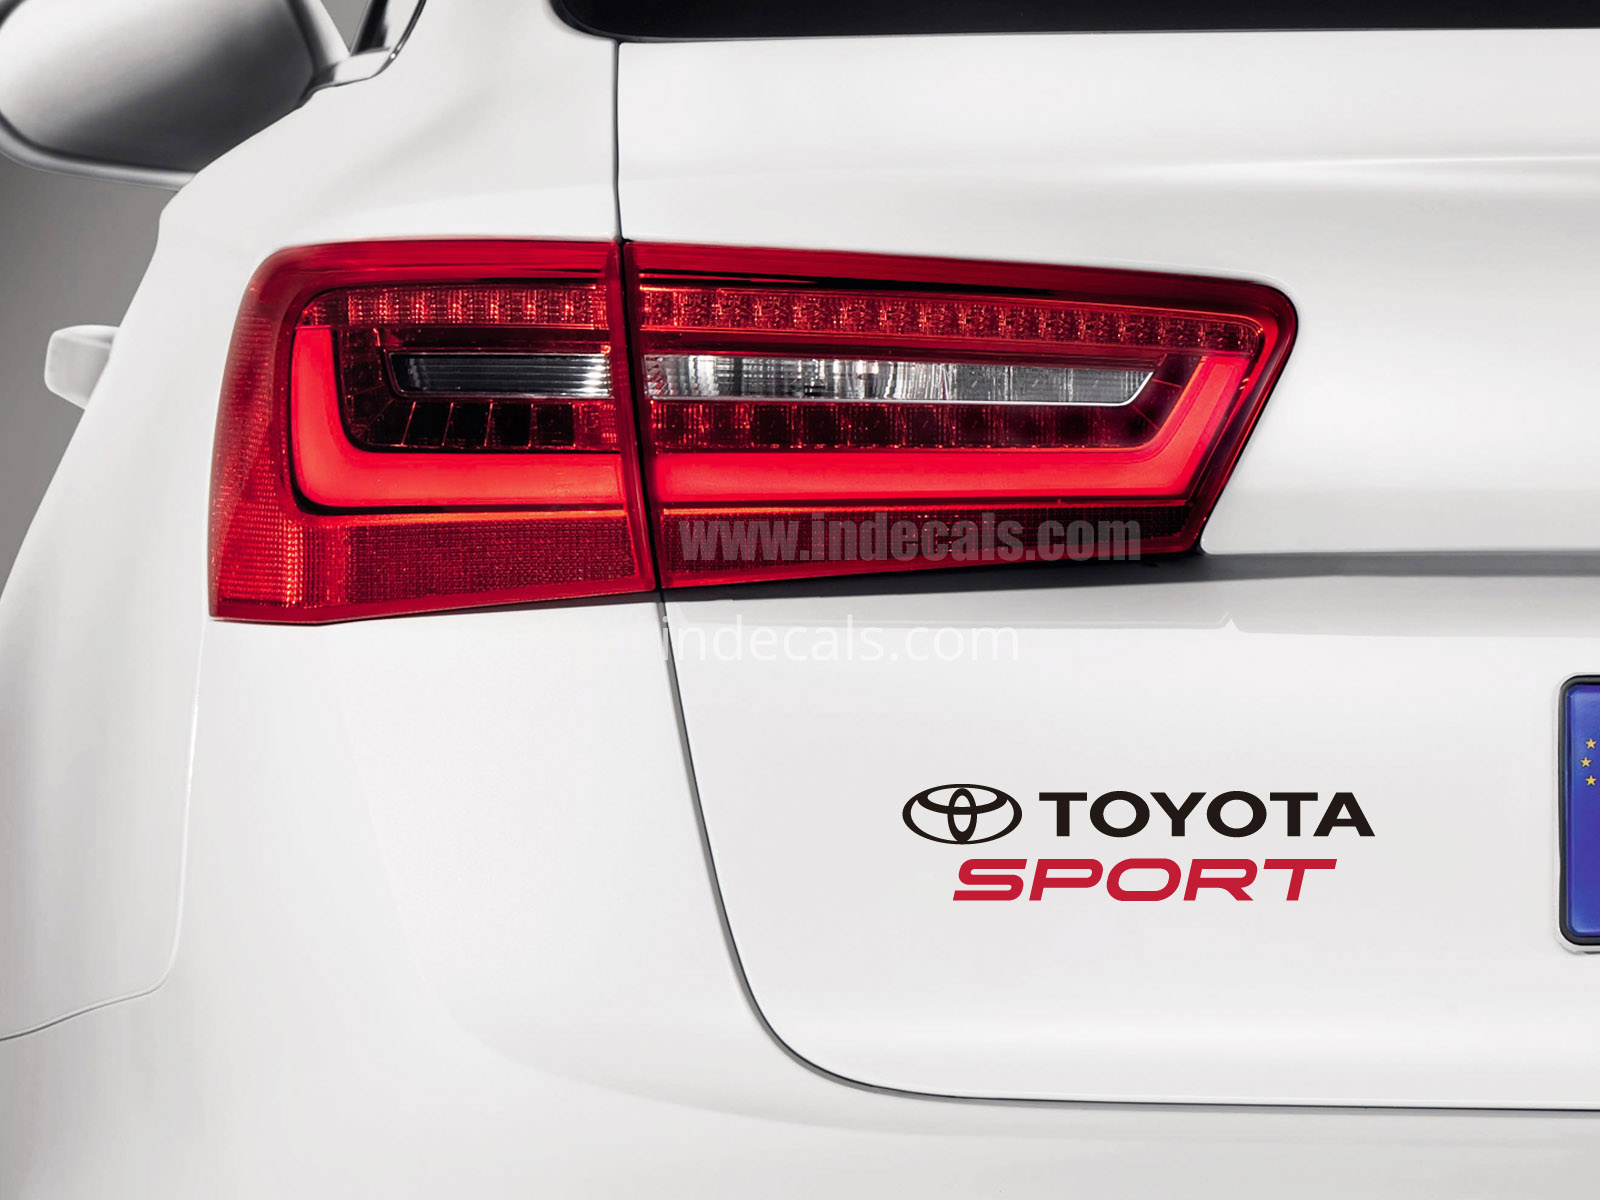 1 x Toyota Sports Sticker for Trunk - Black & Red